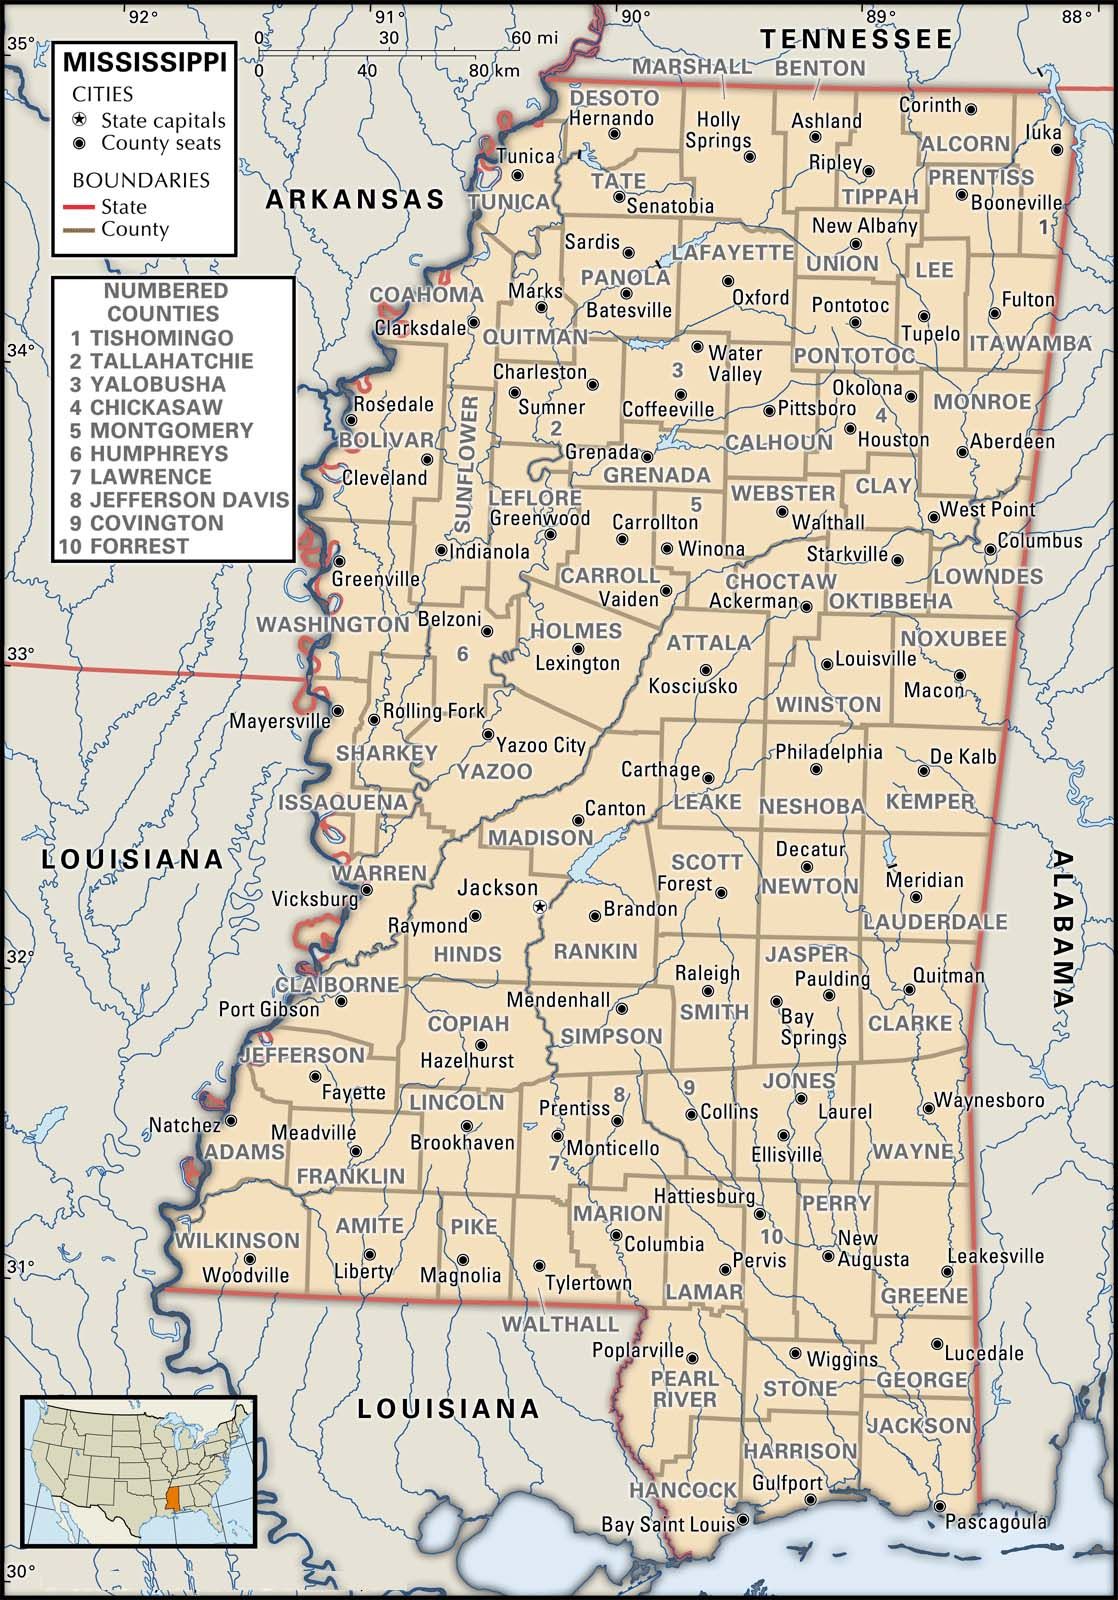 Map Of Mississippi County Boundaries And County Seats